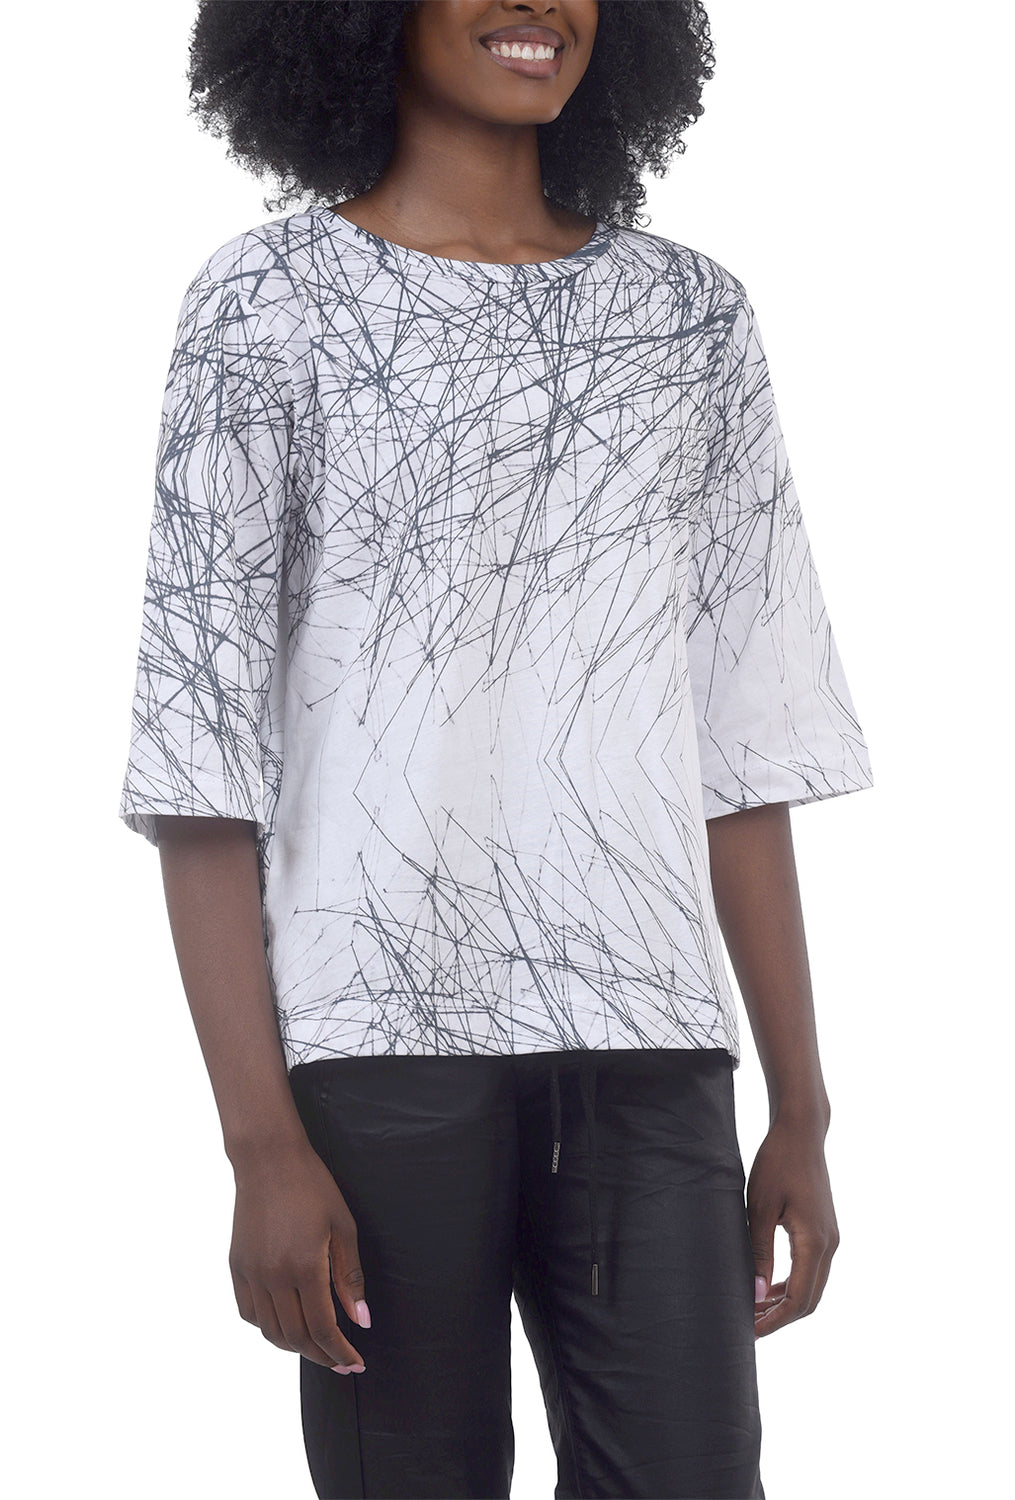 T/9 Branches Boat Neck Tee, Ivory/Black